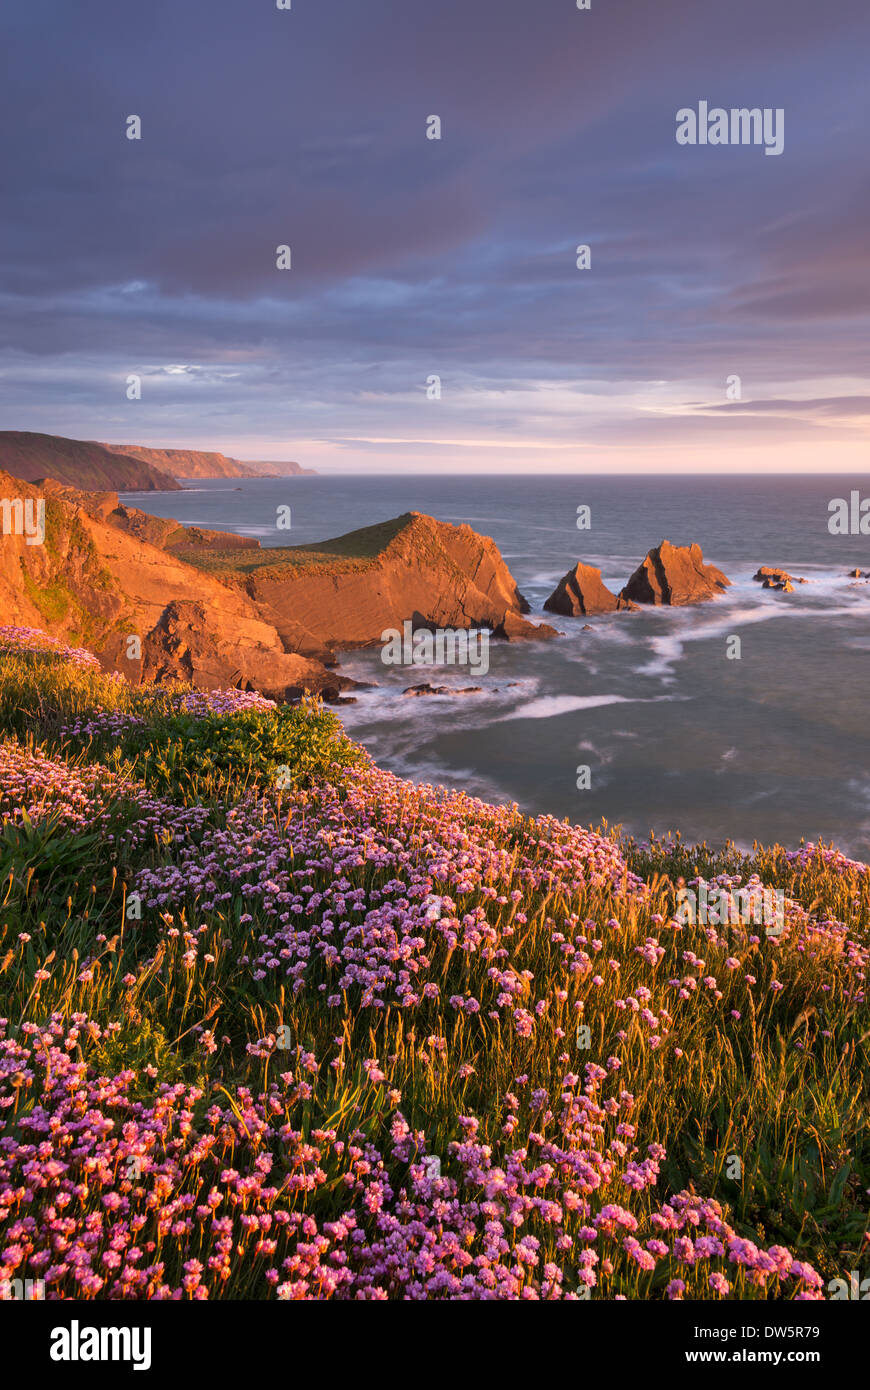 Flowering pink thrift on the cliffs above Hartland Quay looking towards Screda Point, Devon, England. Spring (May) 2013. - Stock Image